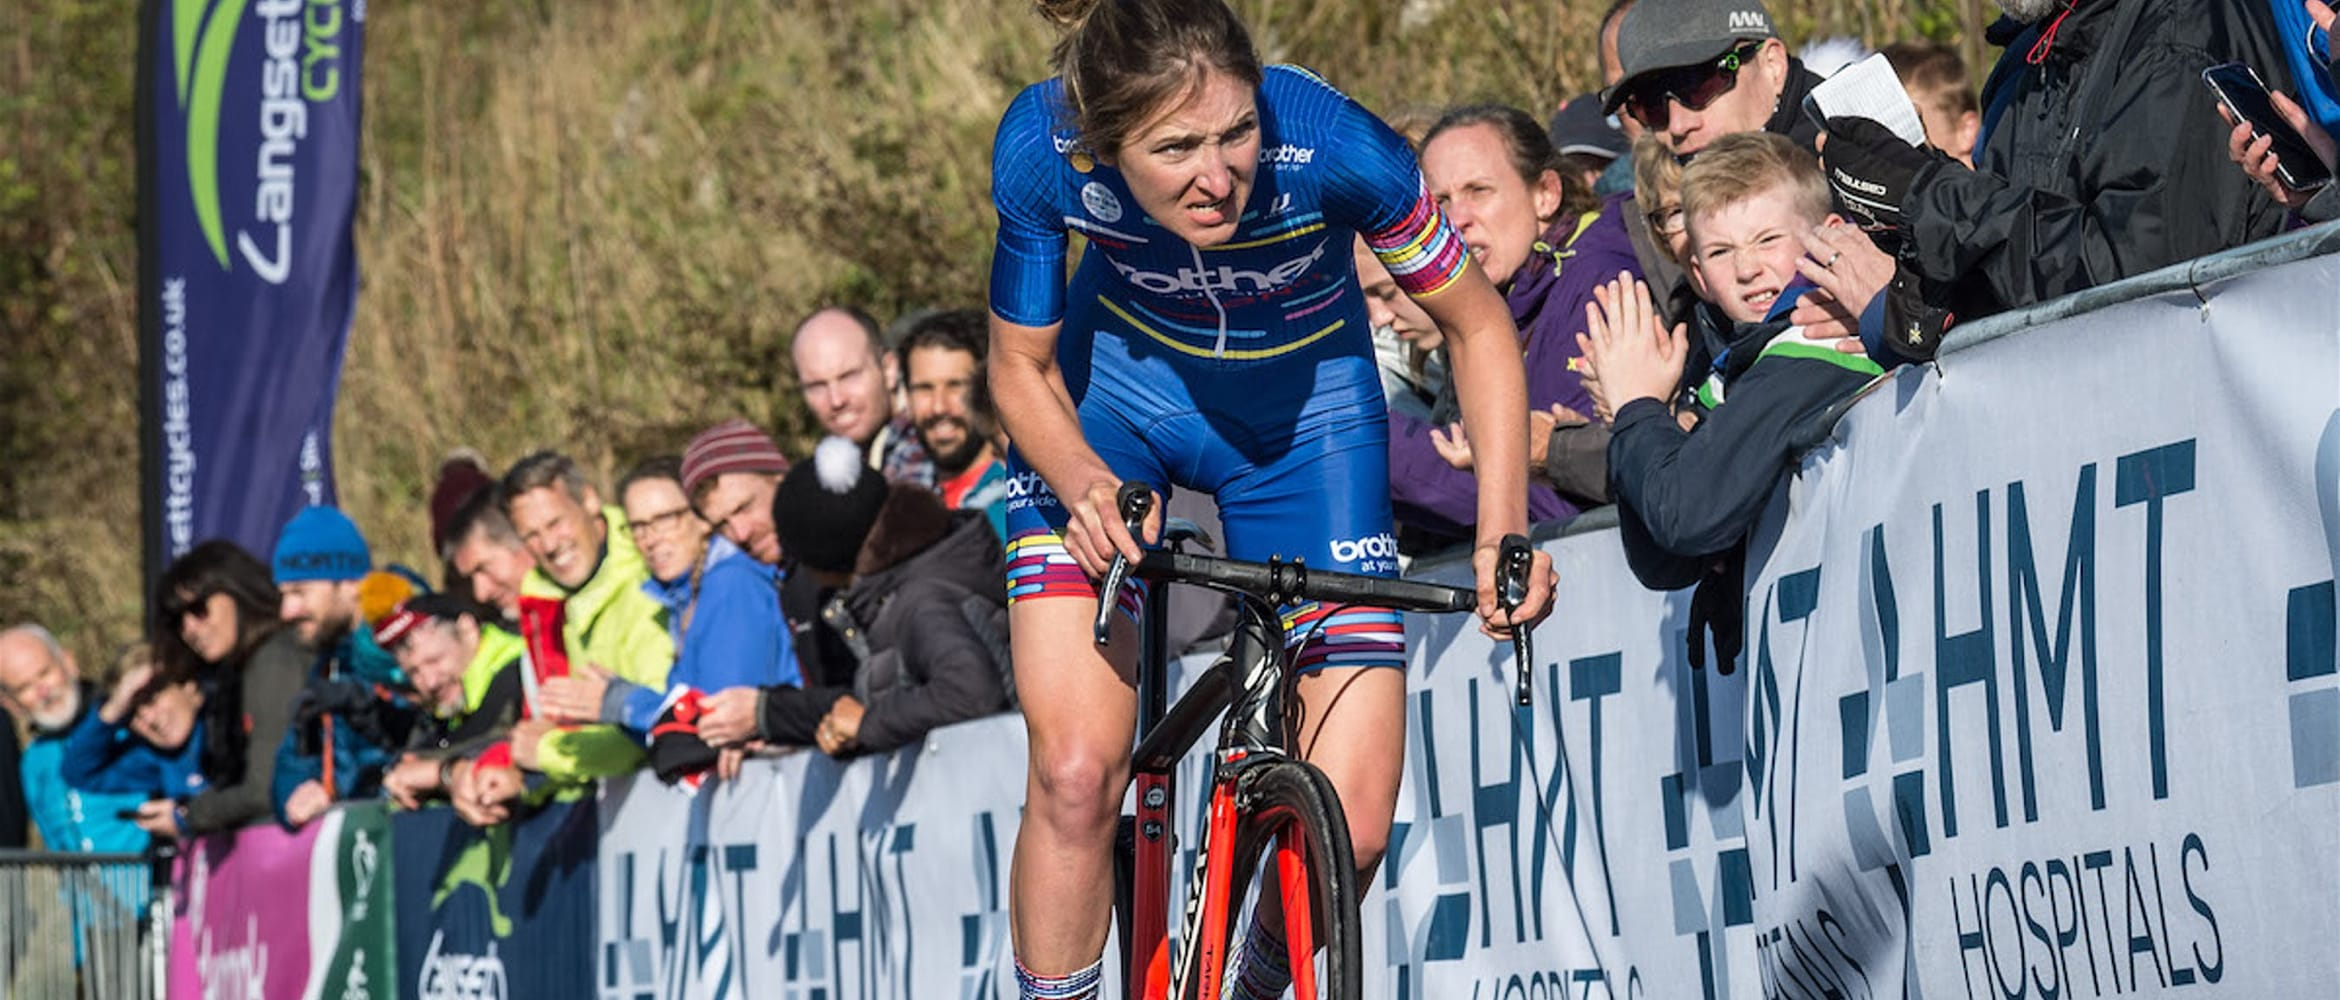 Cyclist Rebecca Richardson approaching the finish line of a hill climb with spectators cheering her on